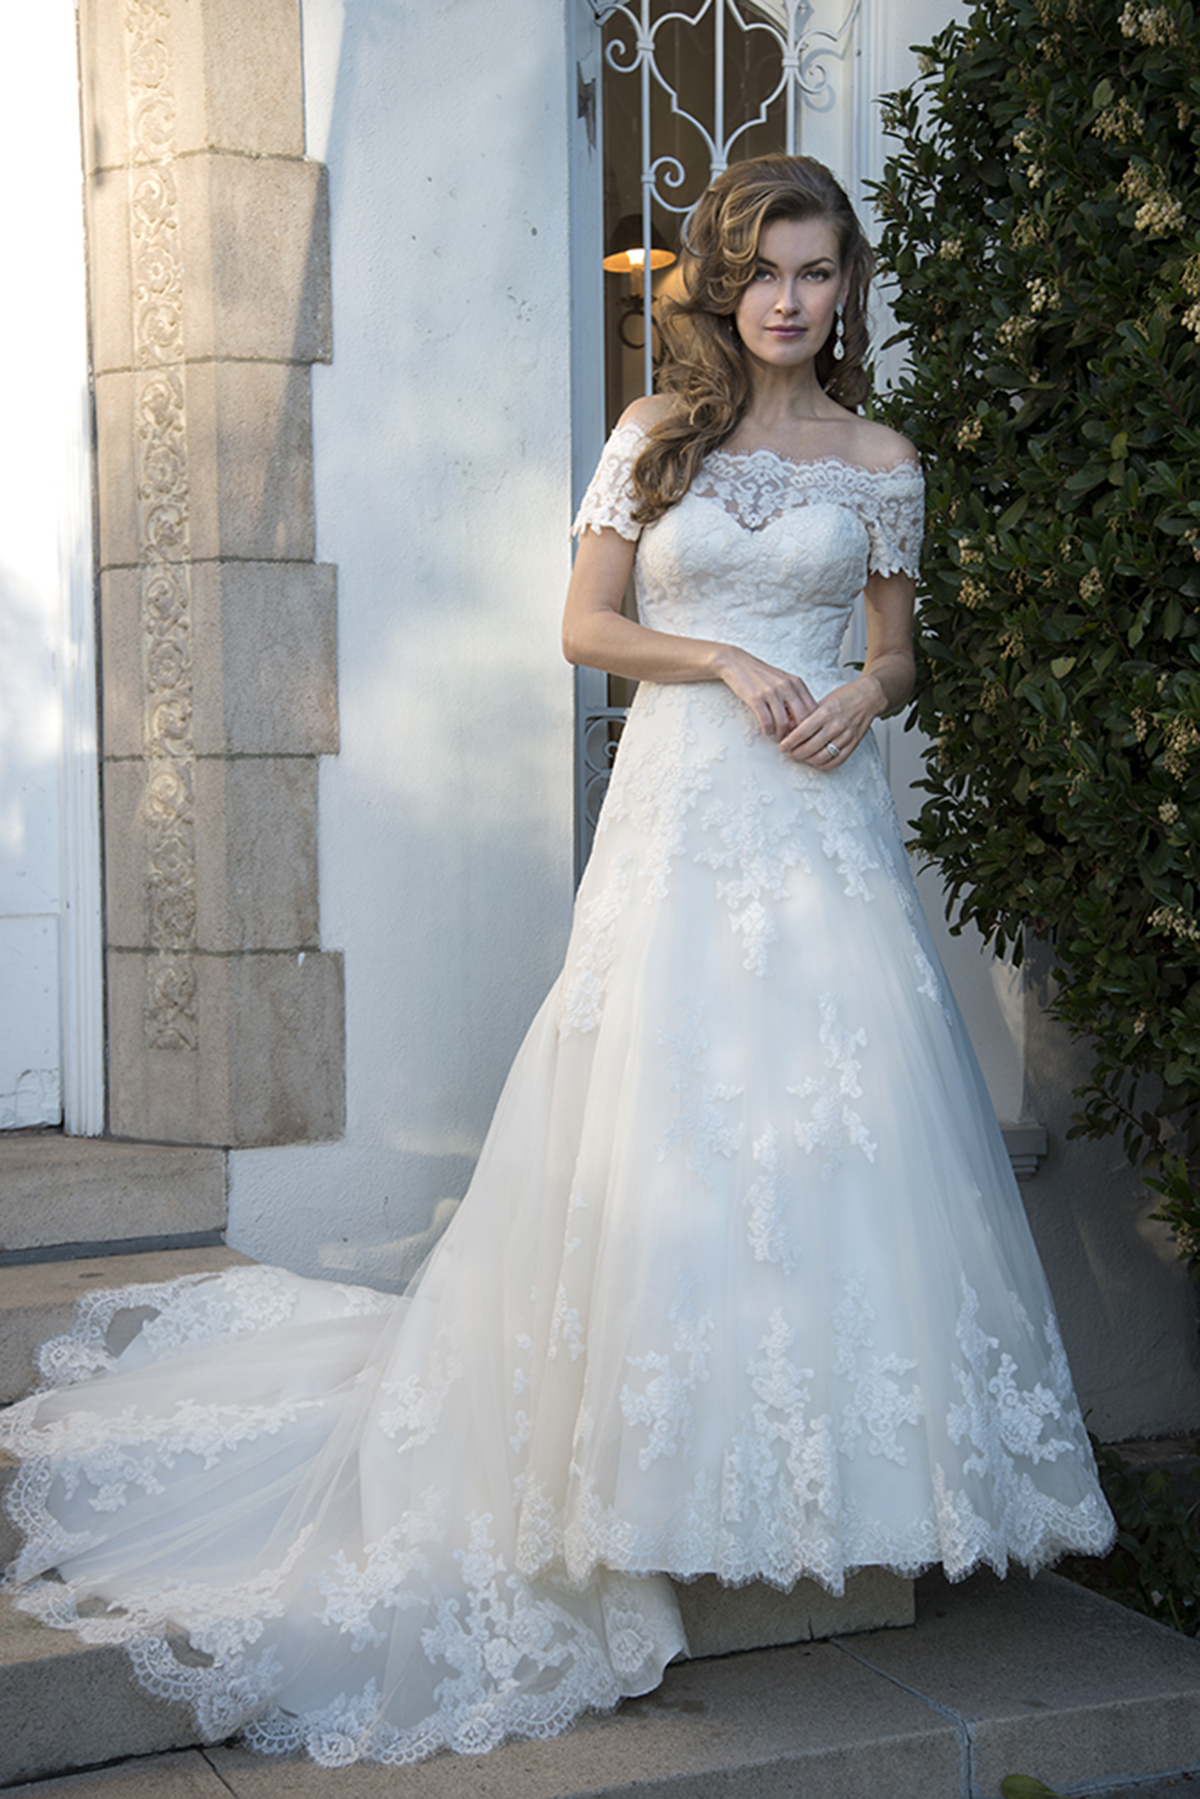 Vada (Venus VE8265) off shoulder lace A-line wedding dress.